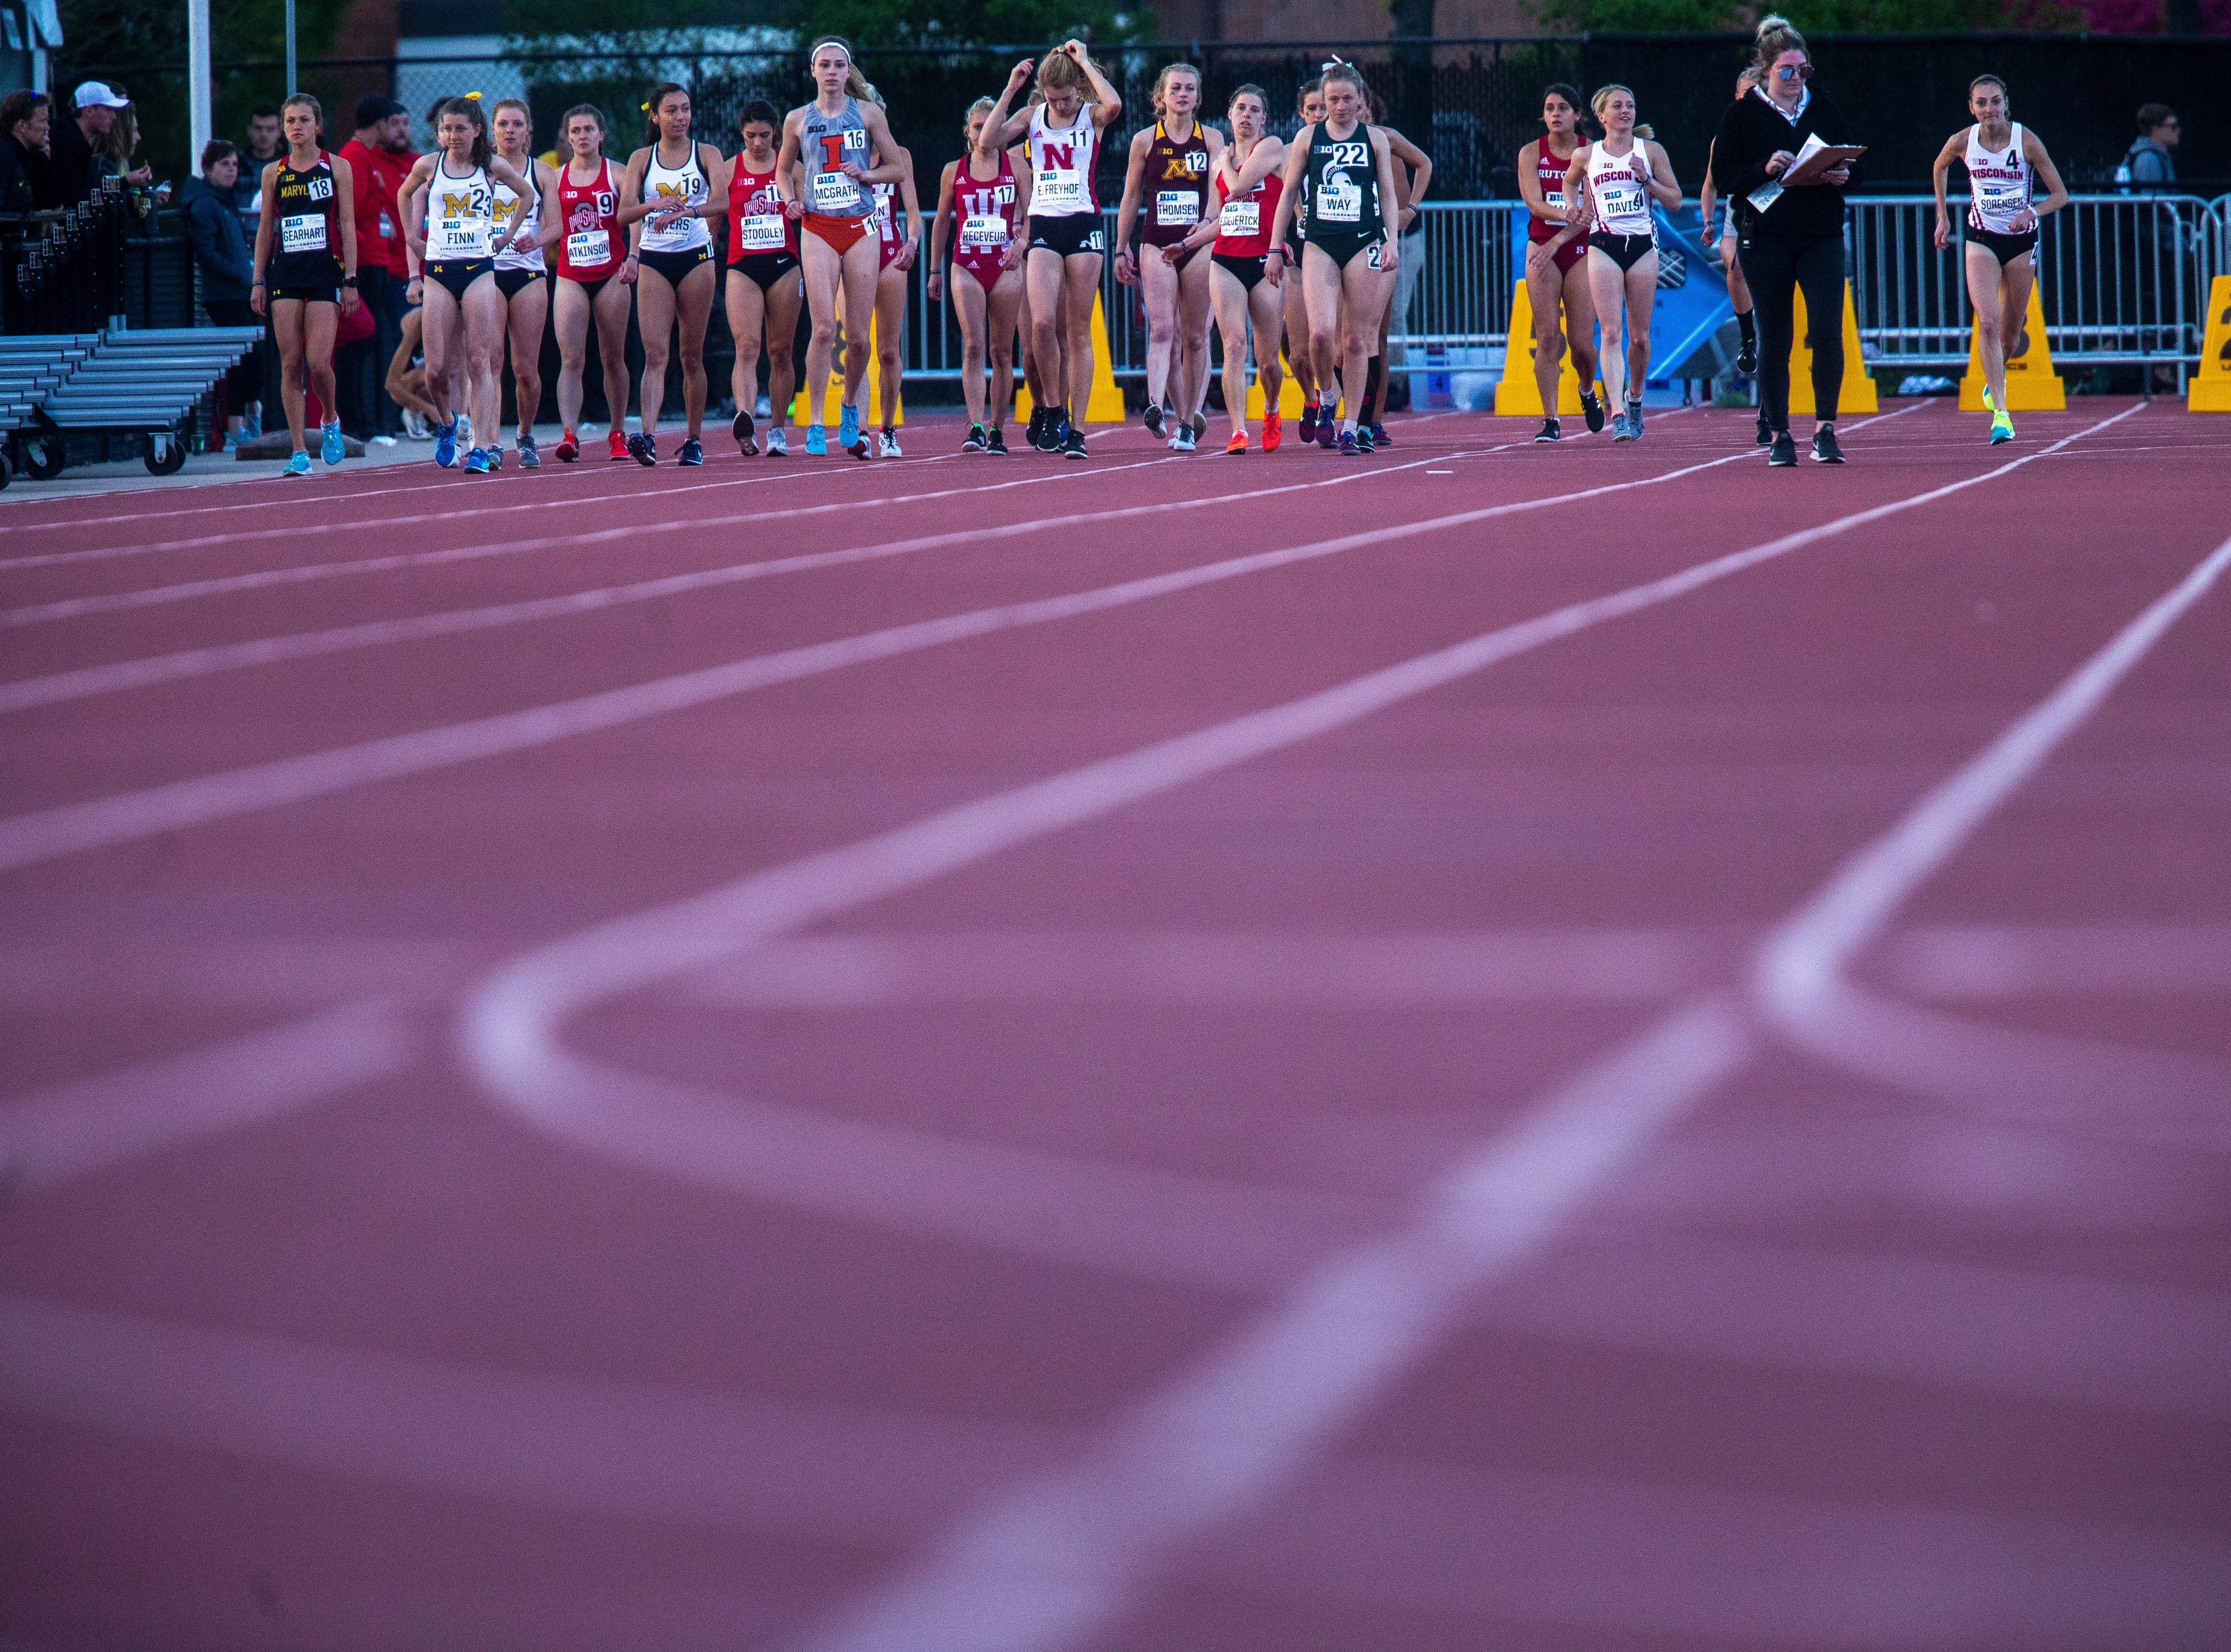 The field of women walk towards the start line before competing in the 10,000 meter during the first night of Big Ten track and field outdoor championships, Friday, May 10, 2019, at Francis X. Cretzmeyer Track on the University of Iowa campus in Iowa City, Iowa.